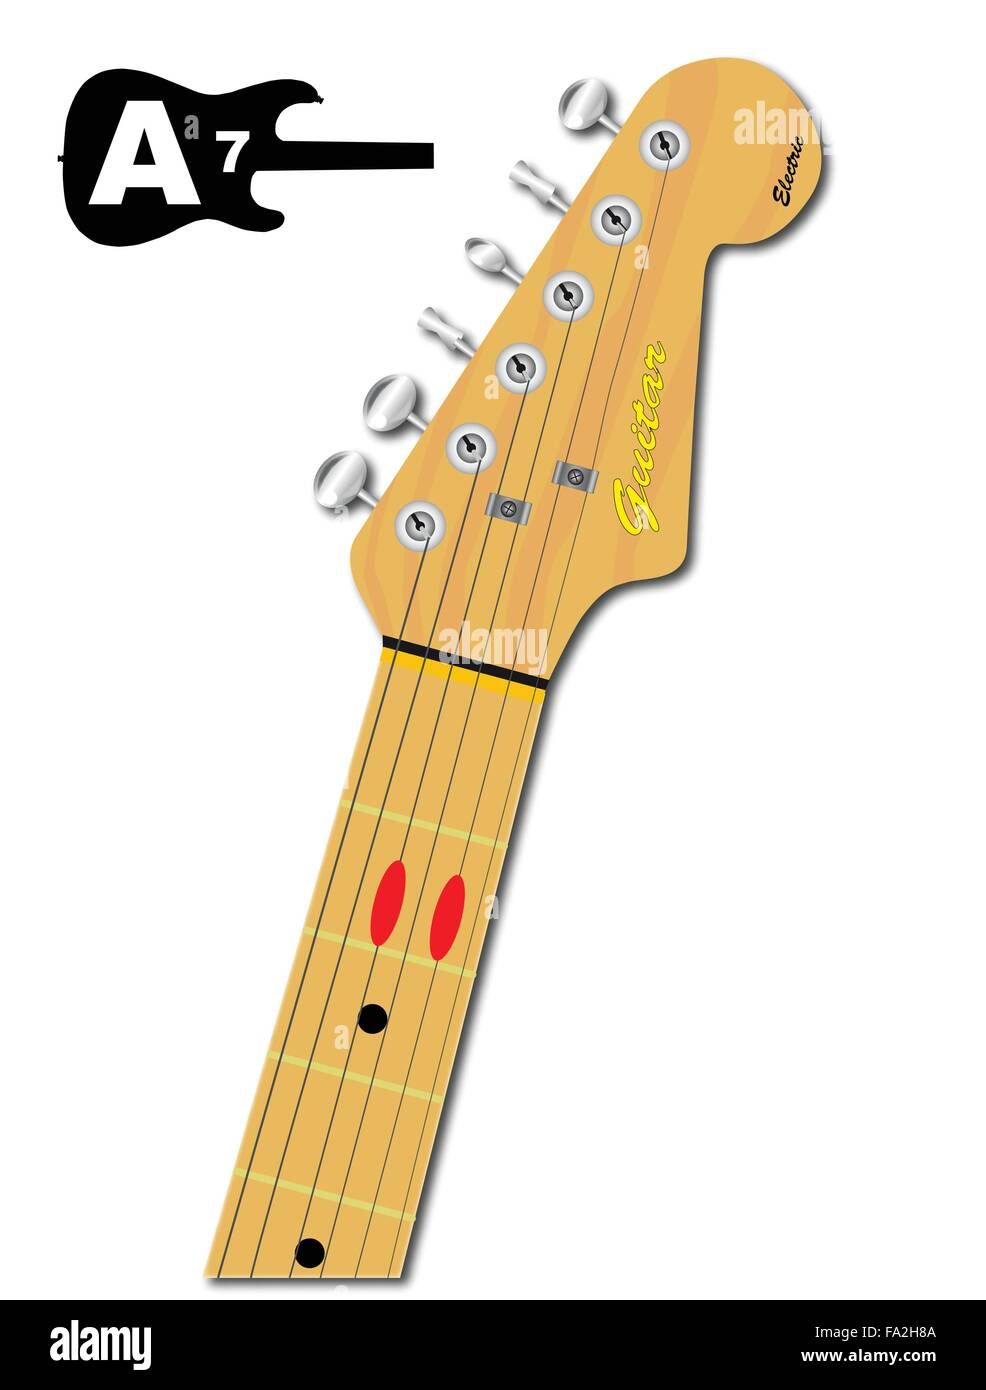 An Electric Guitar Neck With The Chord Shape For A Seventh Indicated